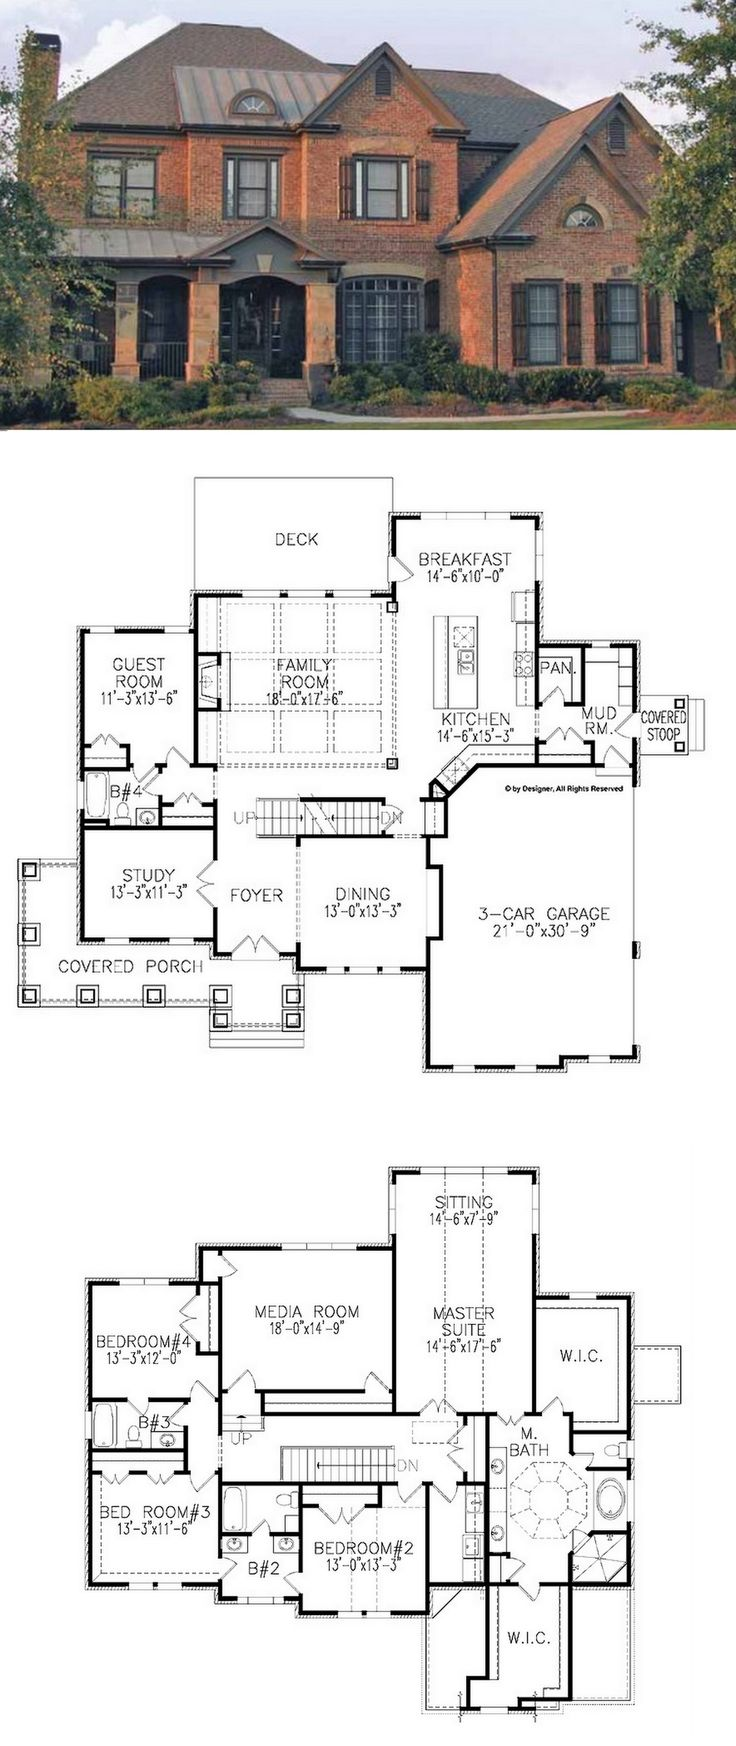 traditional house plan with 3962 square feet and 5 bedrooms from dream home source house